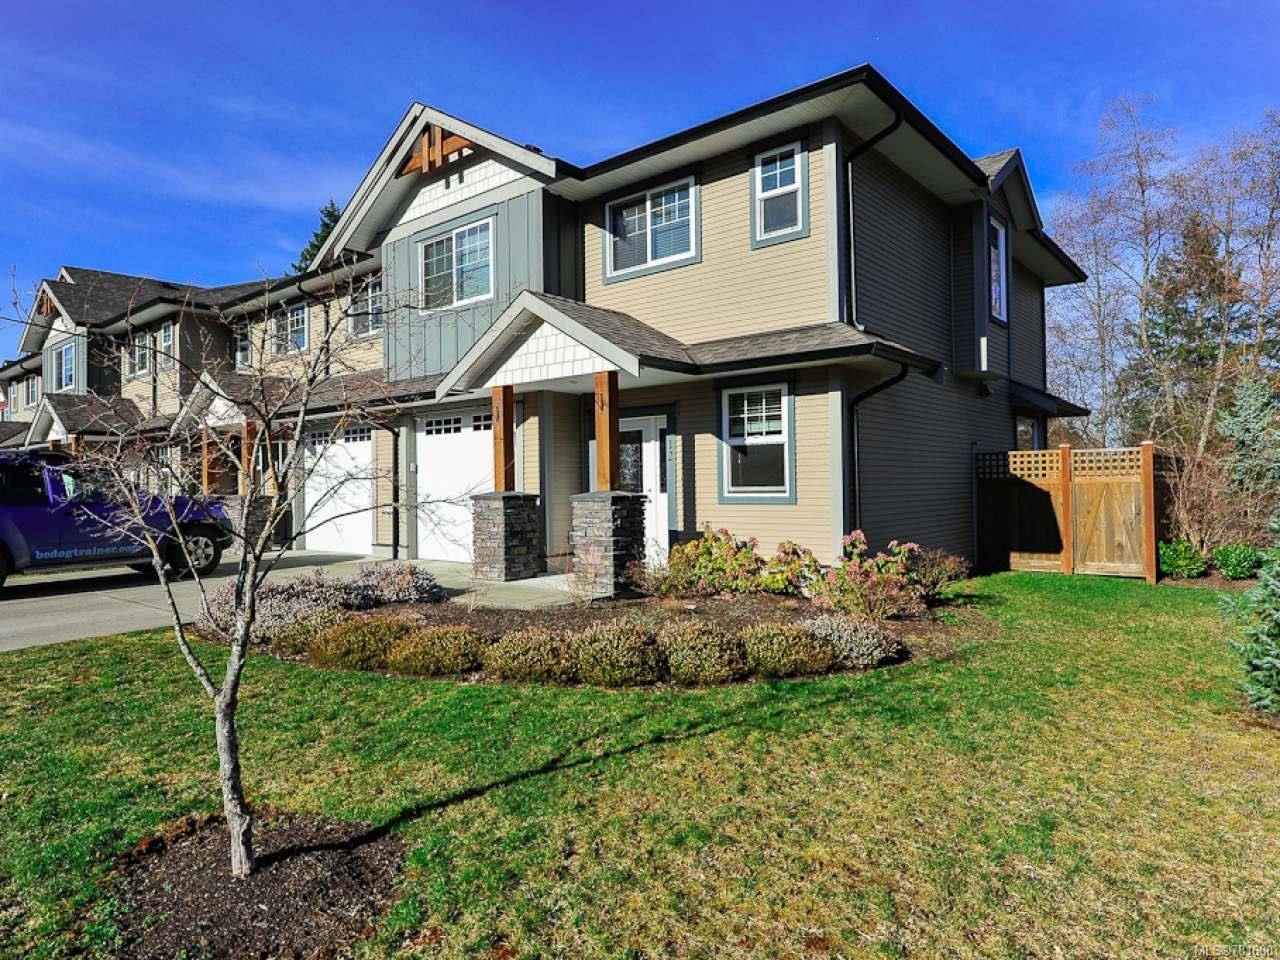 Main Photo: 12 2112 CUMBERLAND ROAD in COURTENAY: CV Courtenay City Row/Townhouse for sale (Comox Valley)  : MLS®# 781680